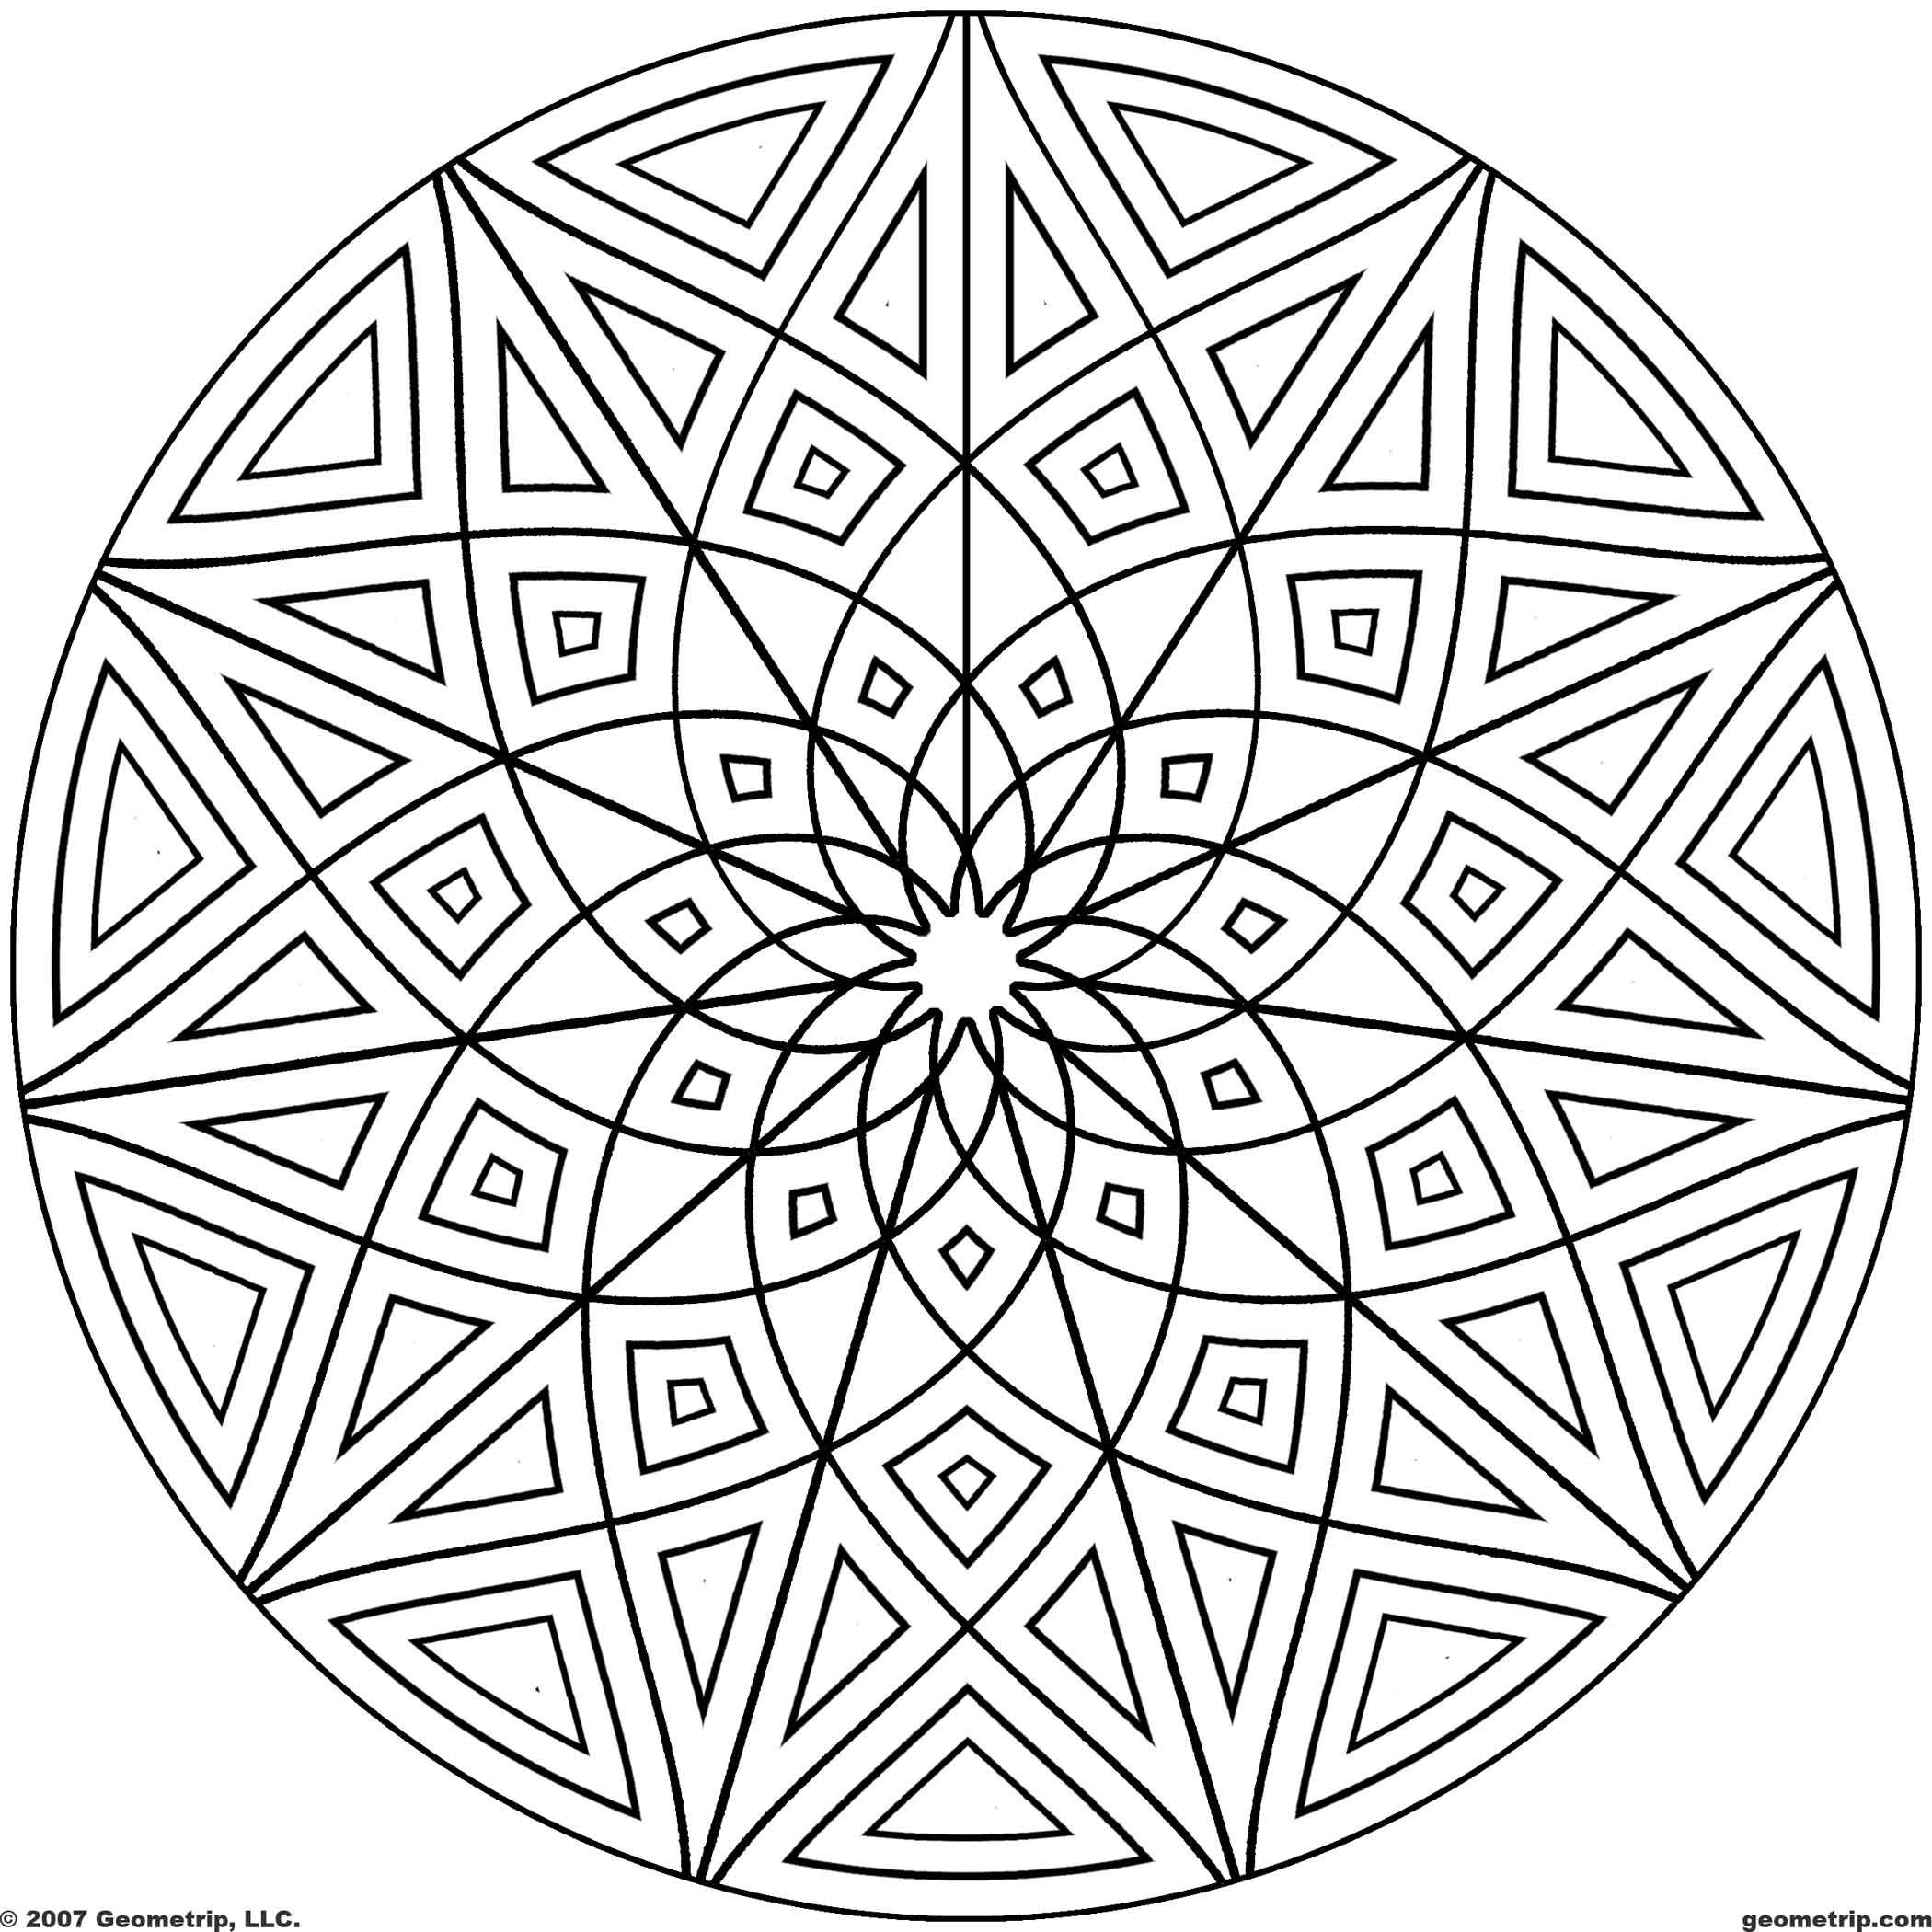 free printable coloring pages mandala designs | Kaleidoscope Coloring Pages | Geometrip.com - Free ...